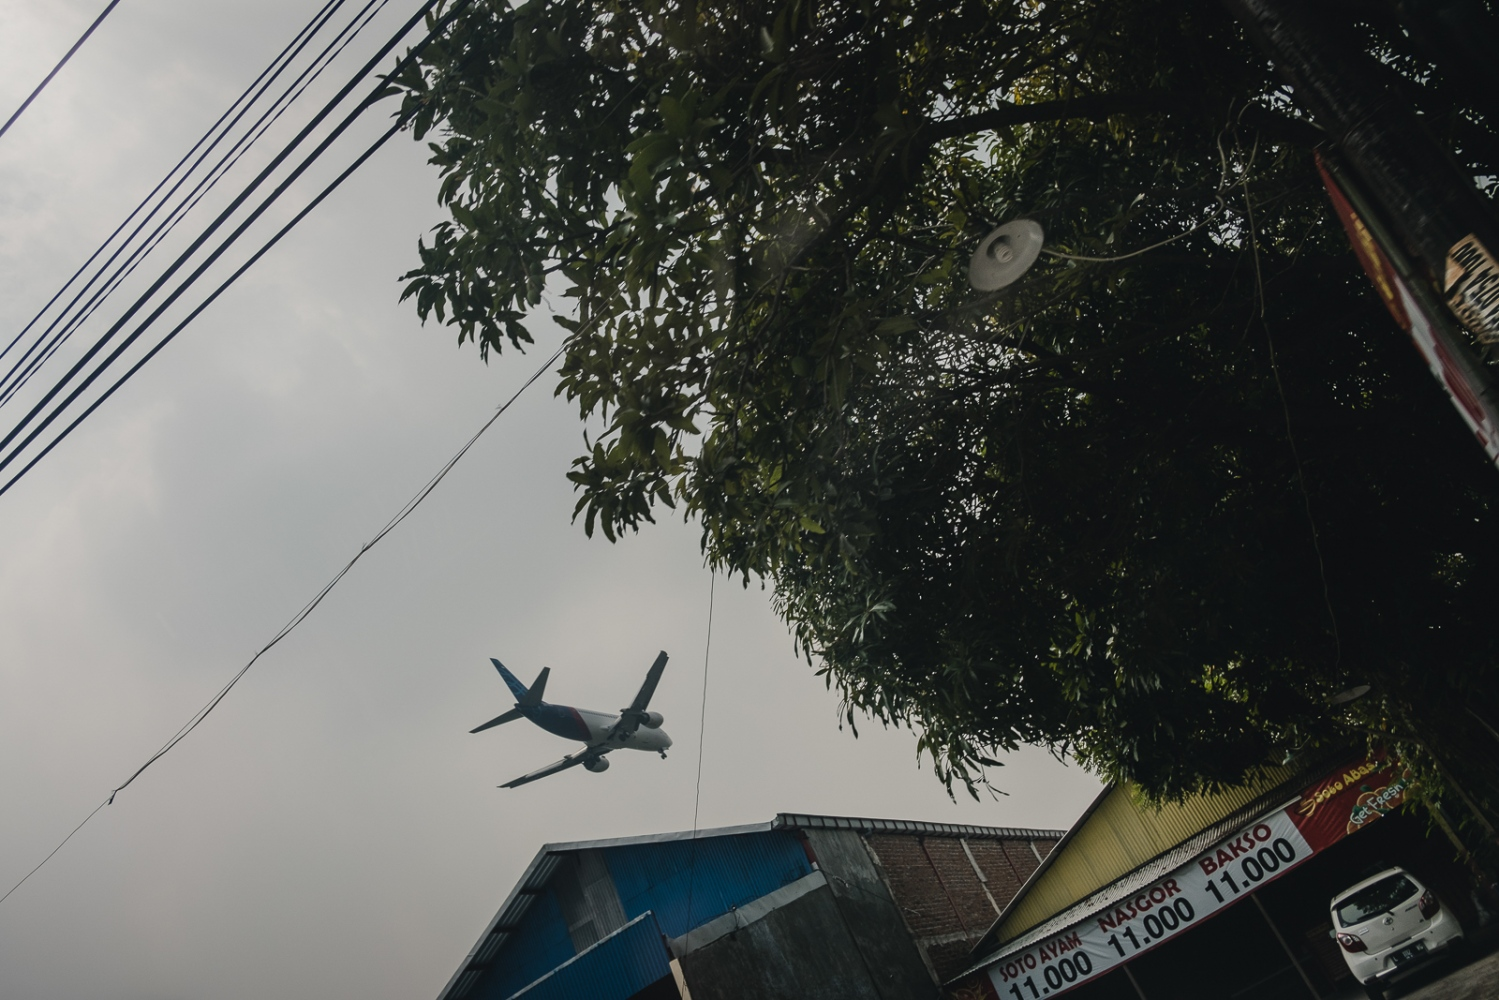 Indonesia, 2016. An aircraft flys over on approach to Surabaya Juanda International Airport, East Java.